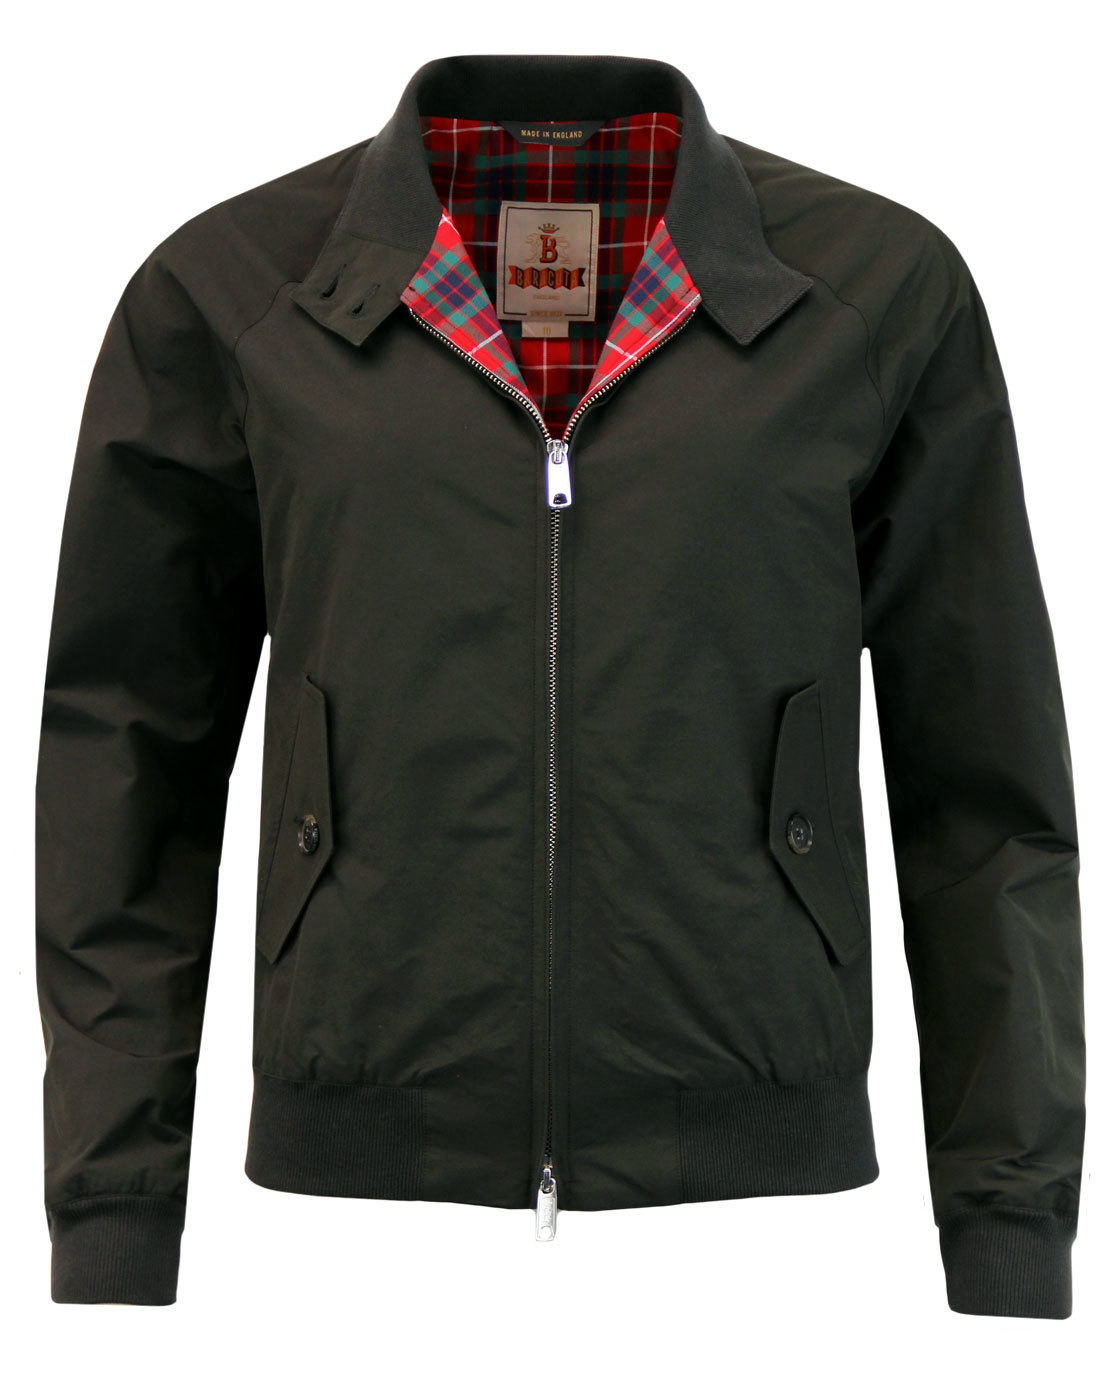 BARACUTA Womens G9 Made in England Harrington (FB)